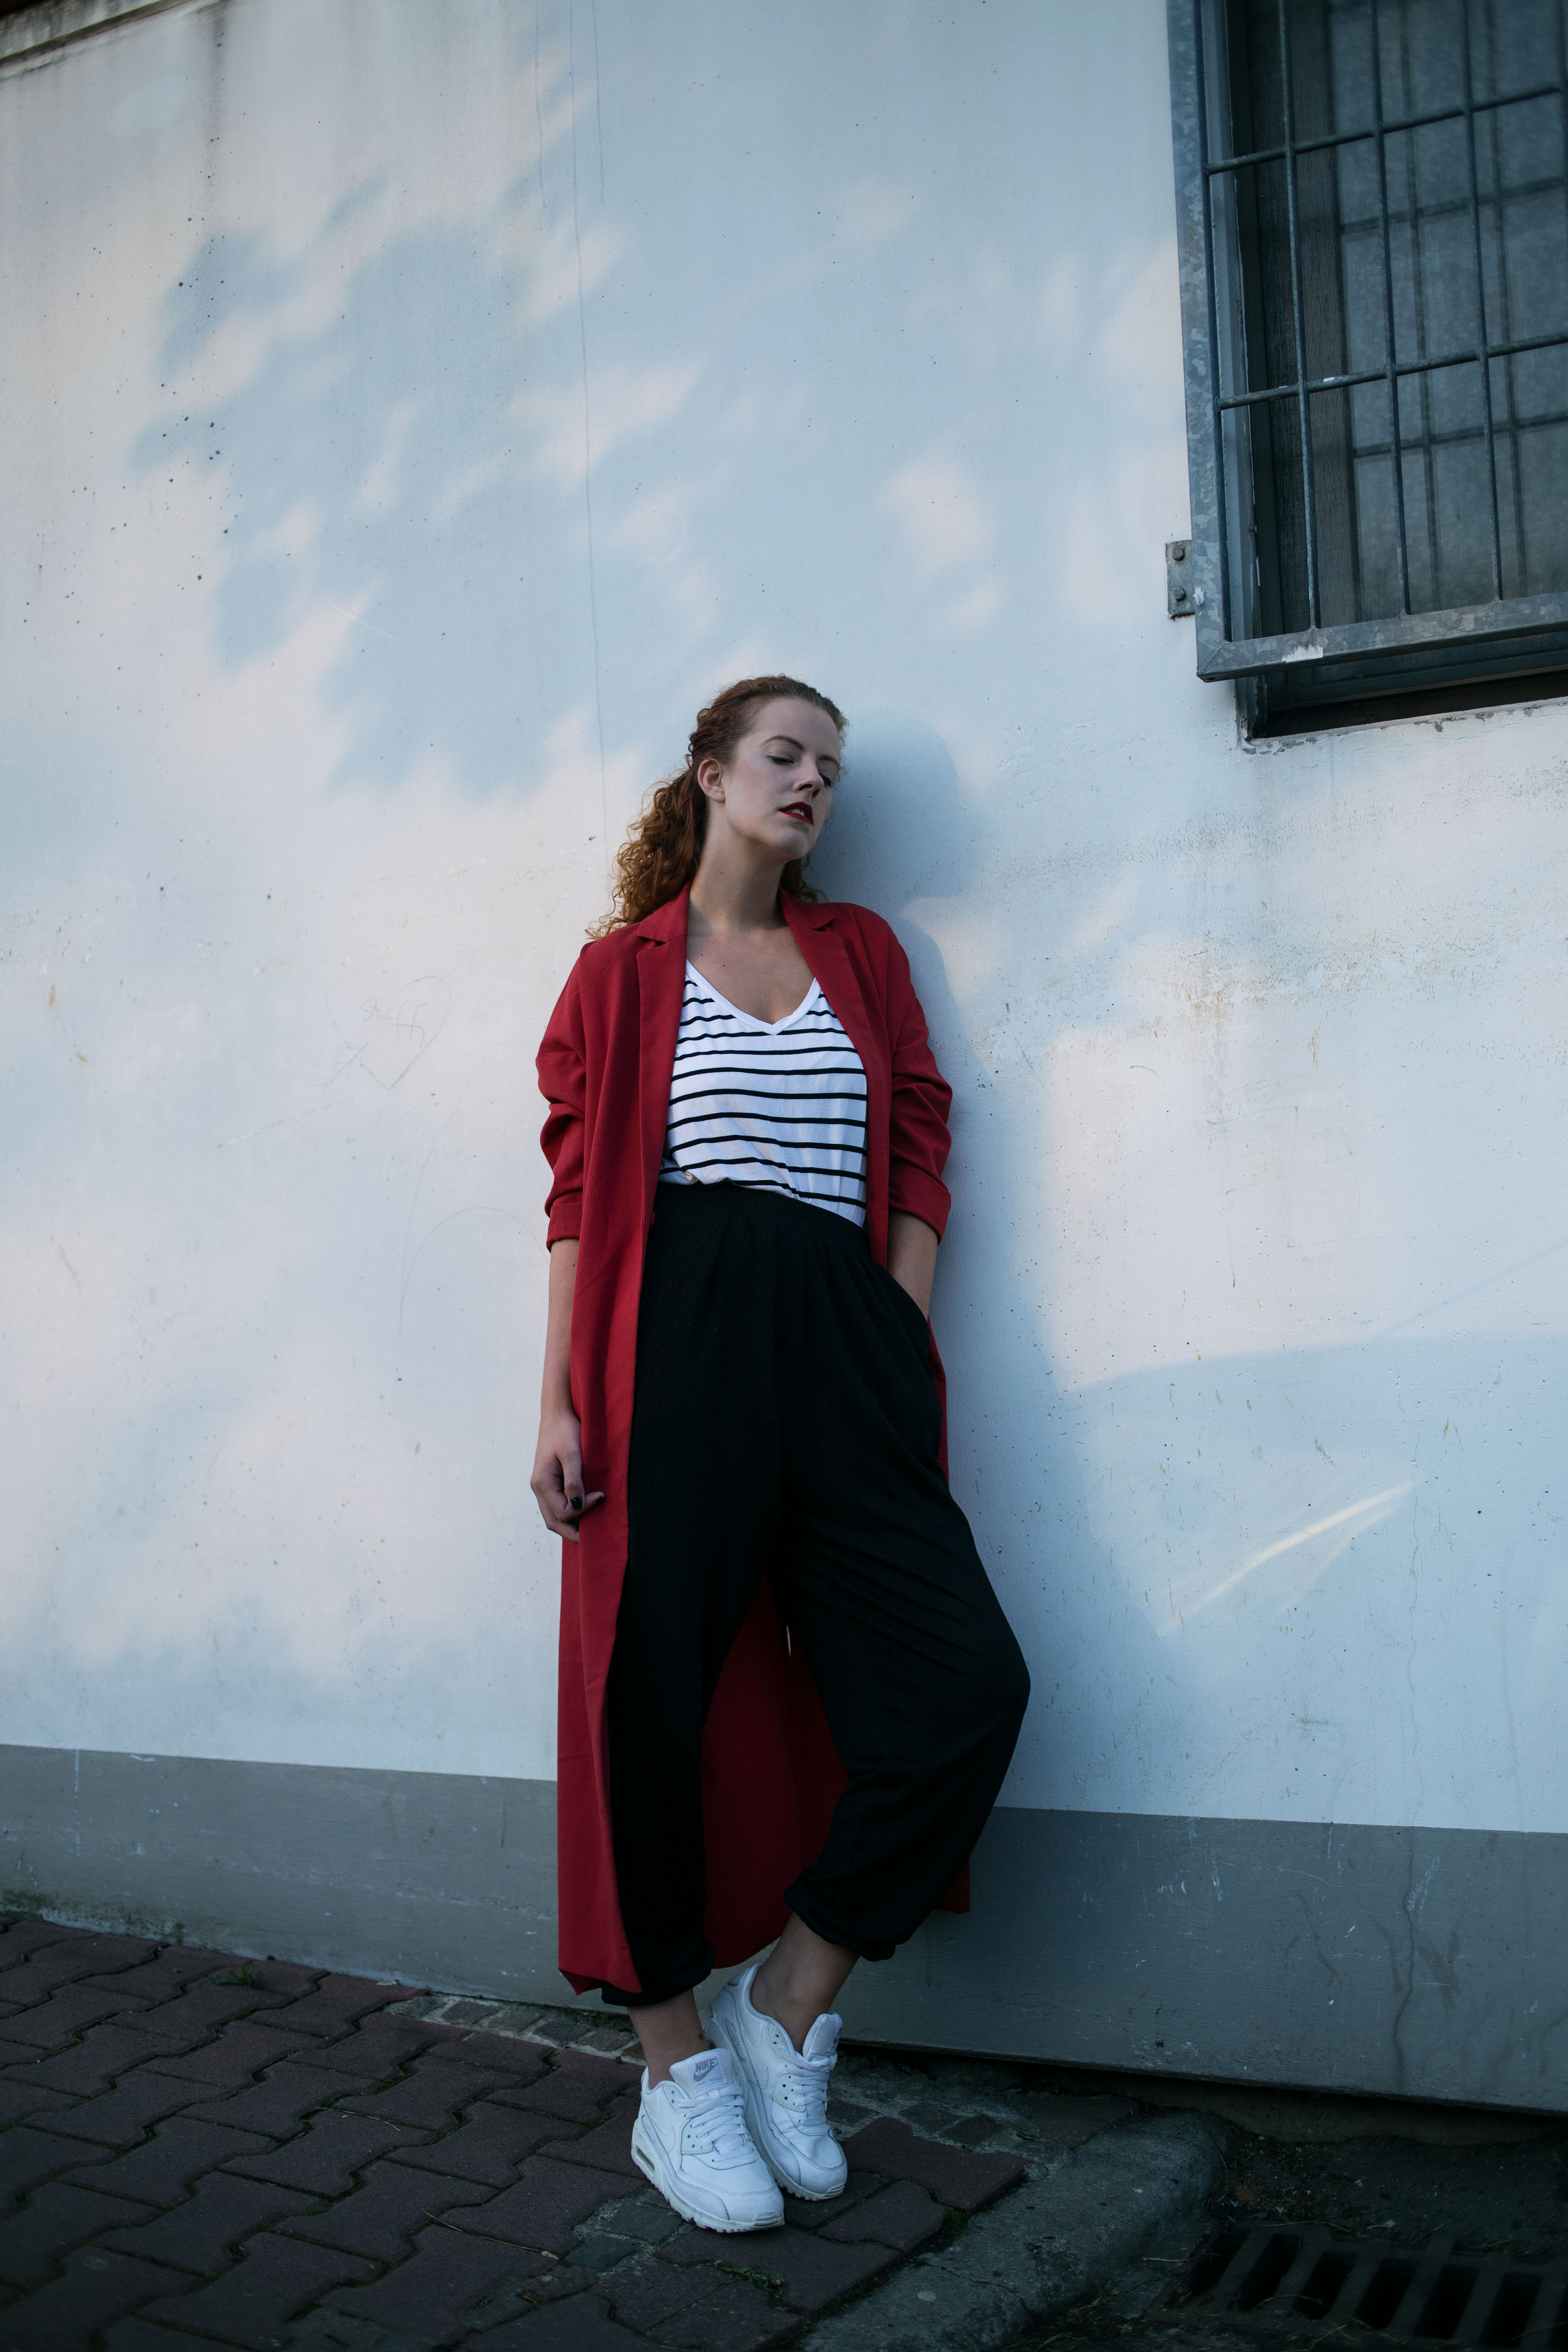 outfit red coat oversize asos 5preview trousers black white striped tee shirt tshirt ffm blogger fashionblogger fashion the curled girl